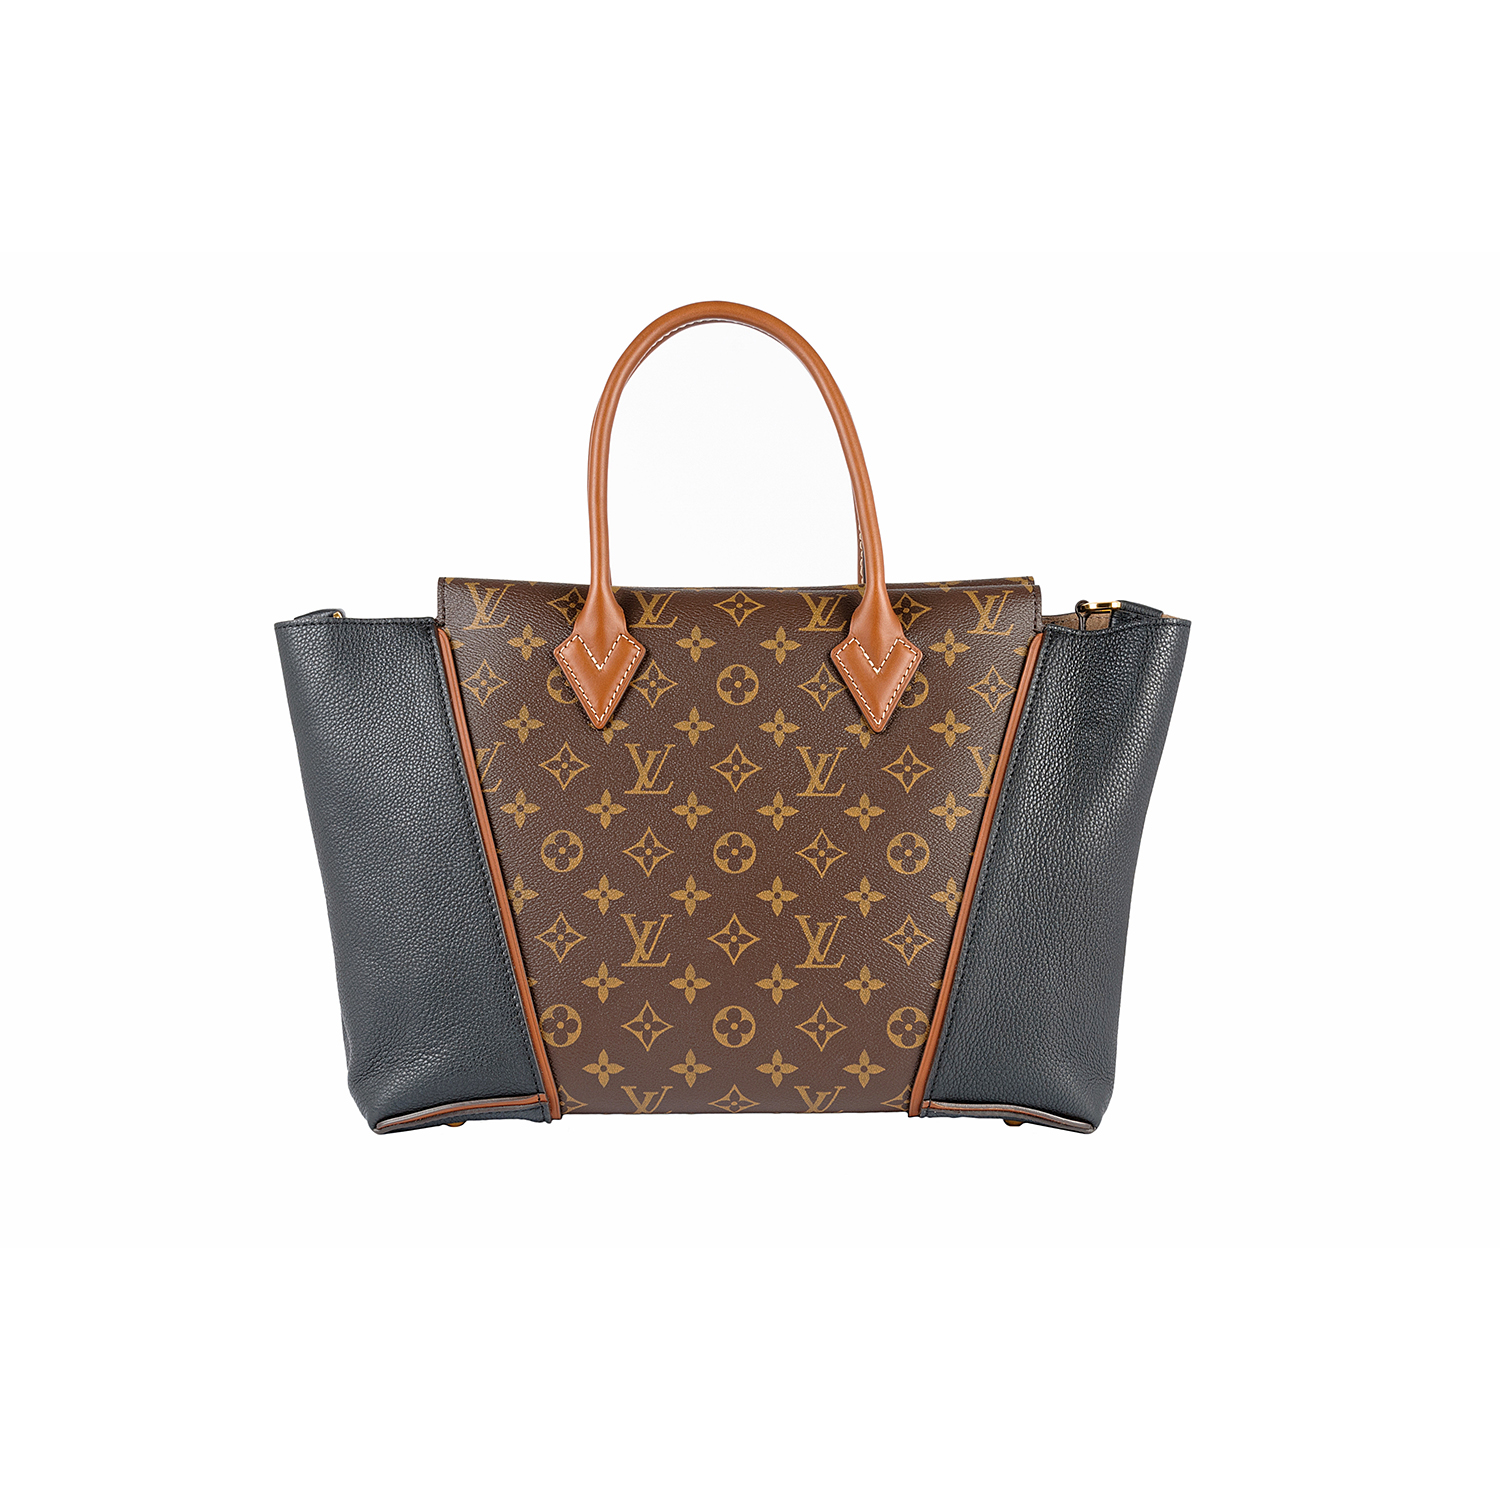 Handbag for rent louis vuitton tote w pm rent fashion bag for Louis vuitton miroir bags